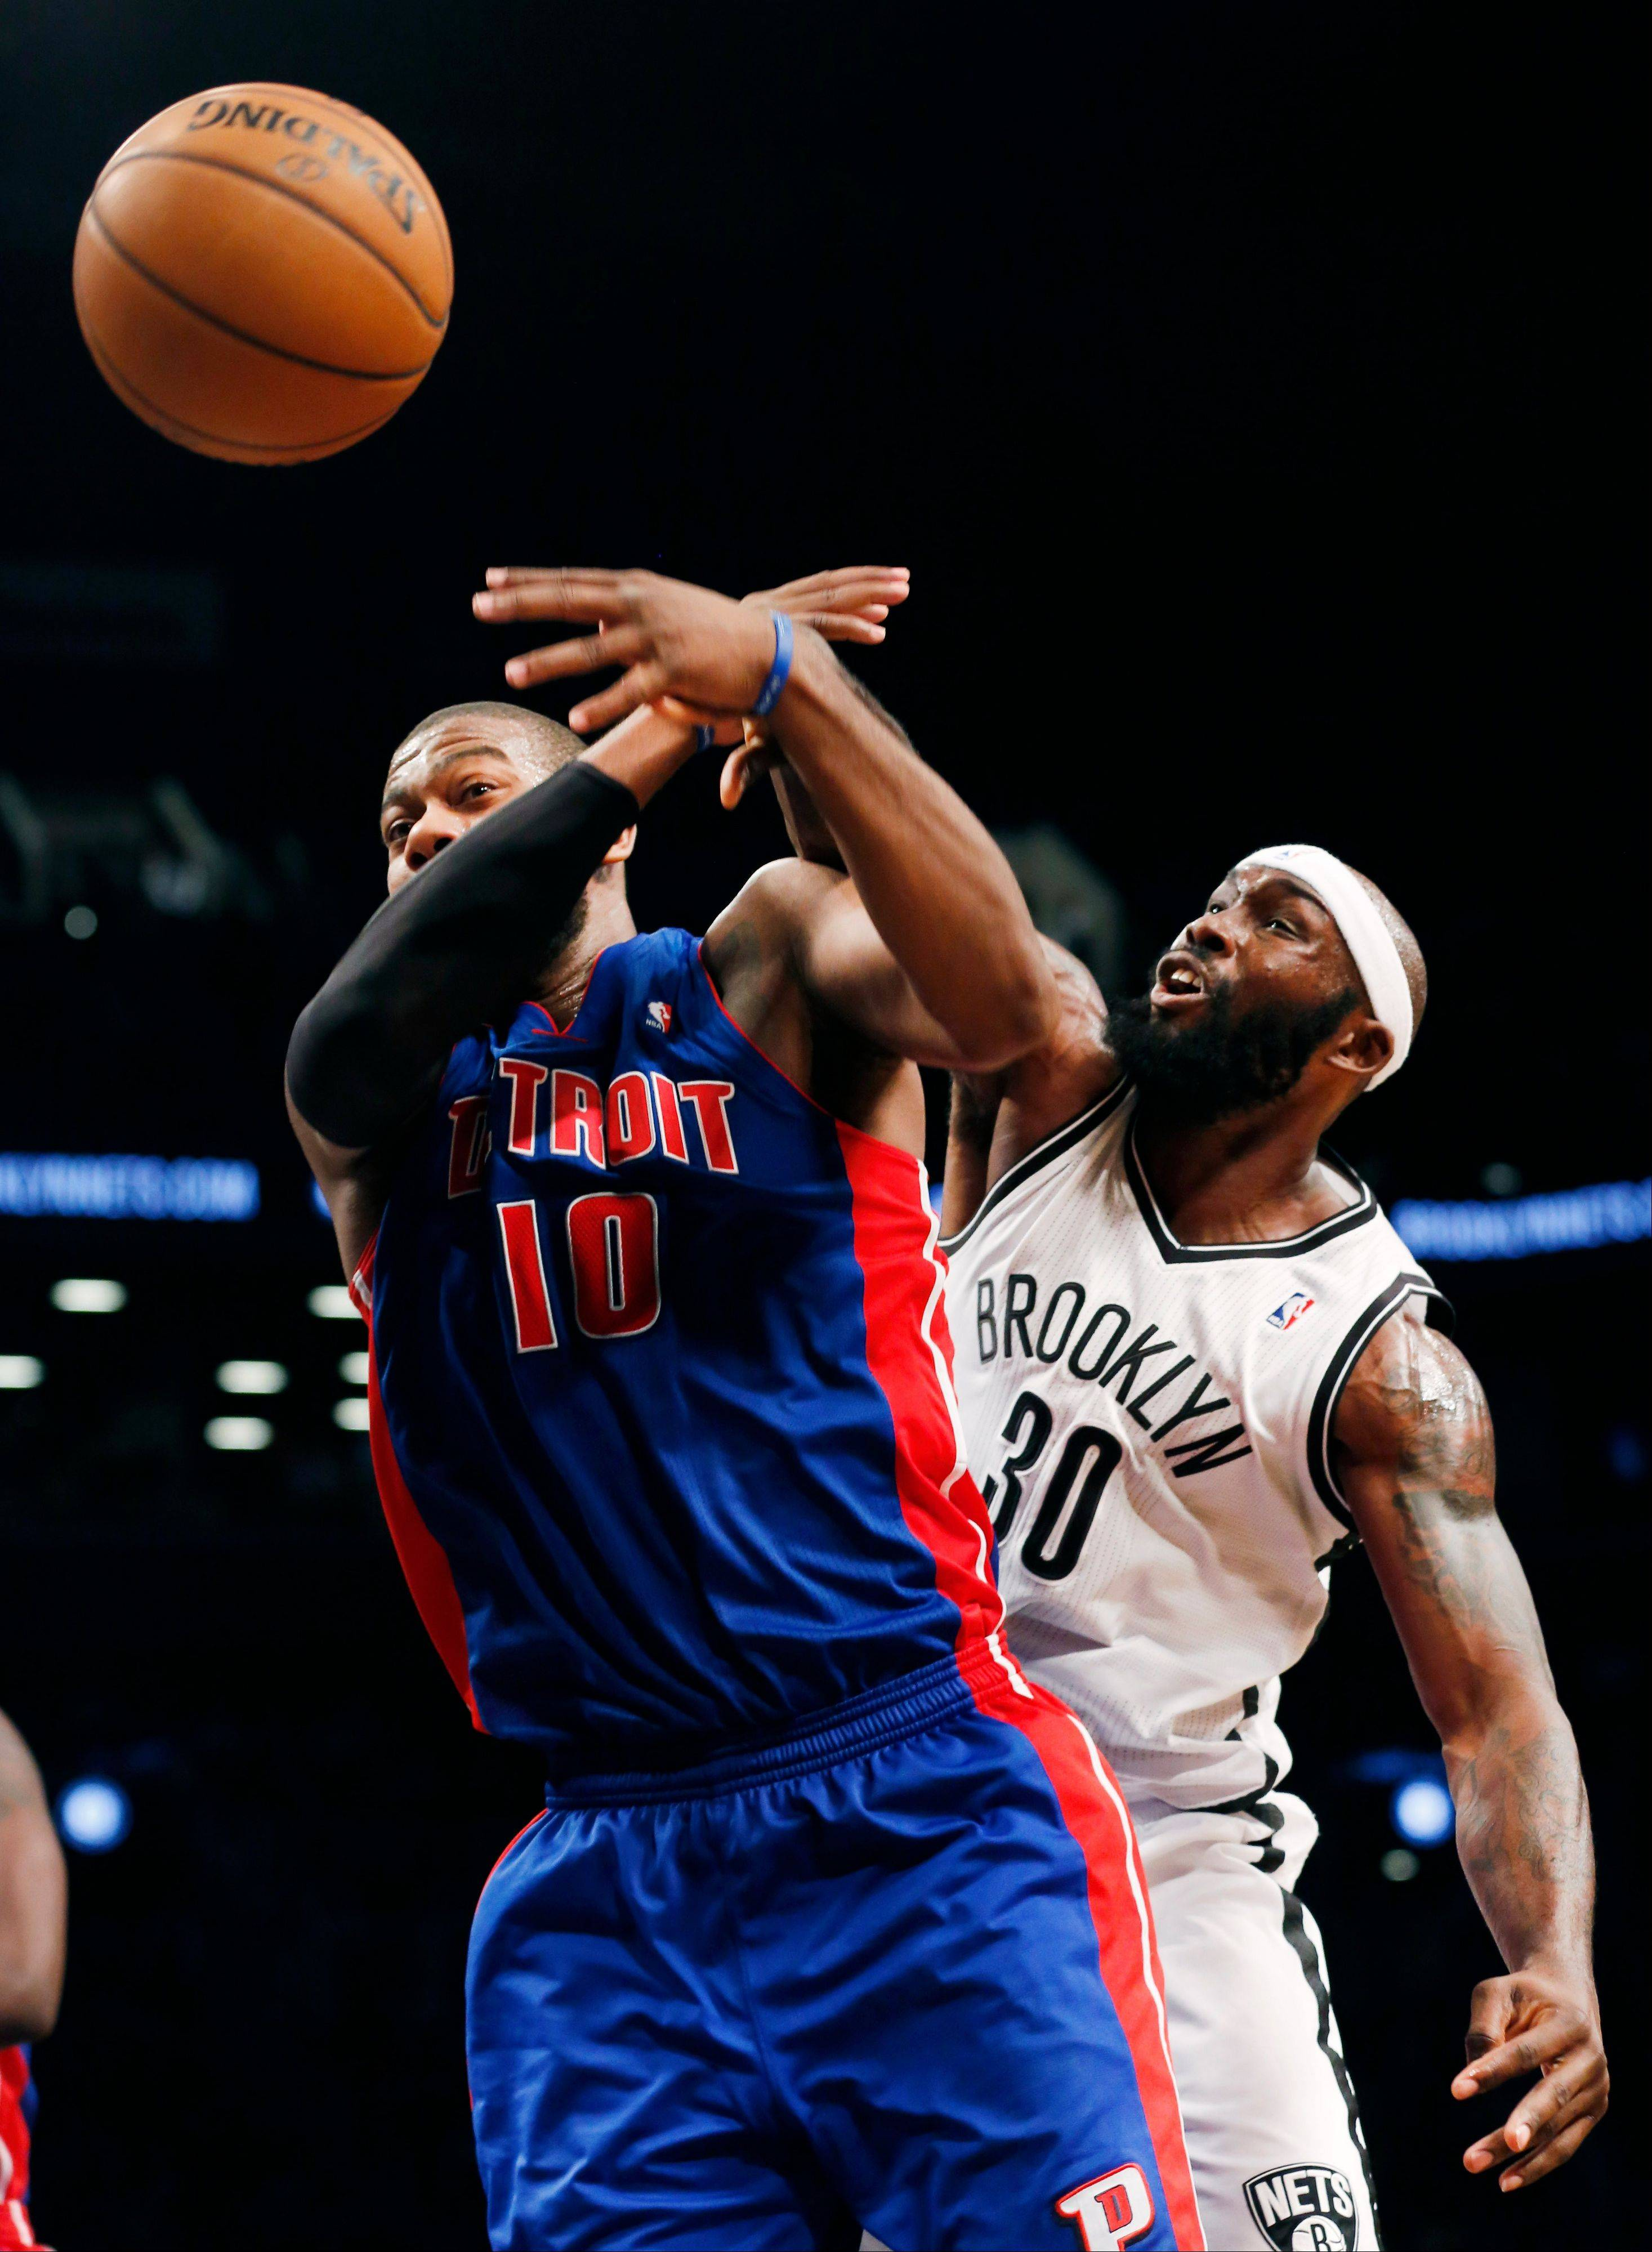 Pistons center Greg Monroe and the Nets' Keith Bogans battle for a rebound during Brooklyn's 107-105 double overtime victory Friday night. Bogans will see his old team tonight when he returns to the United Center to take on the Bulls.